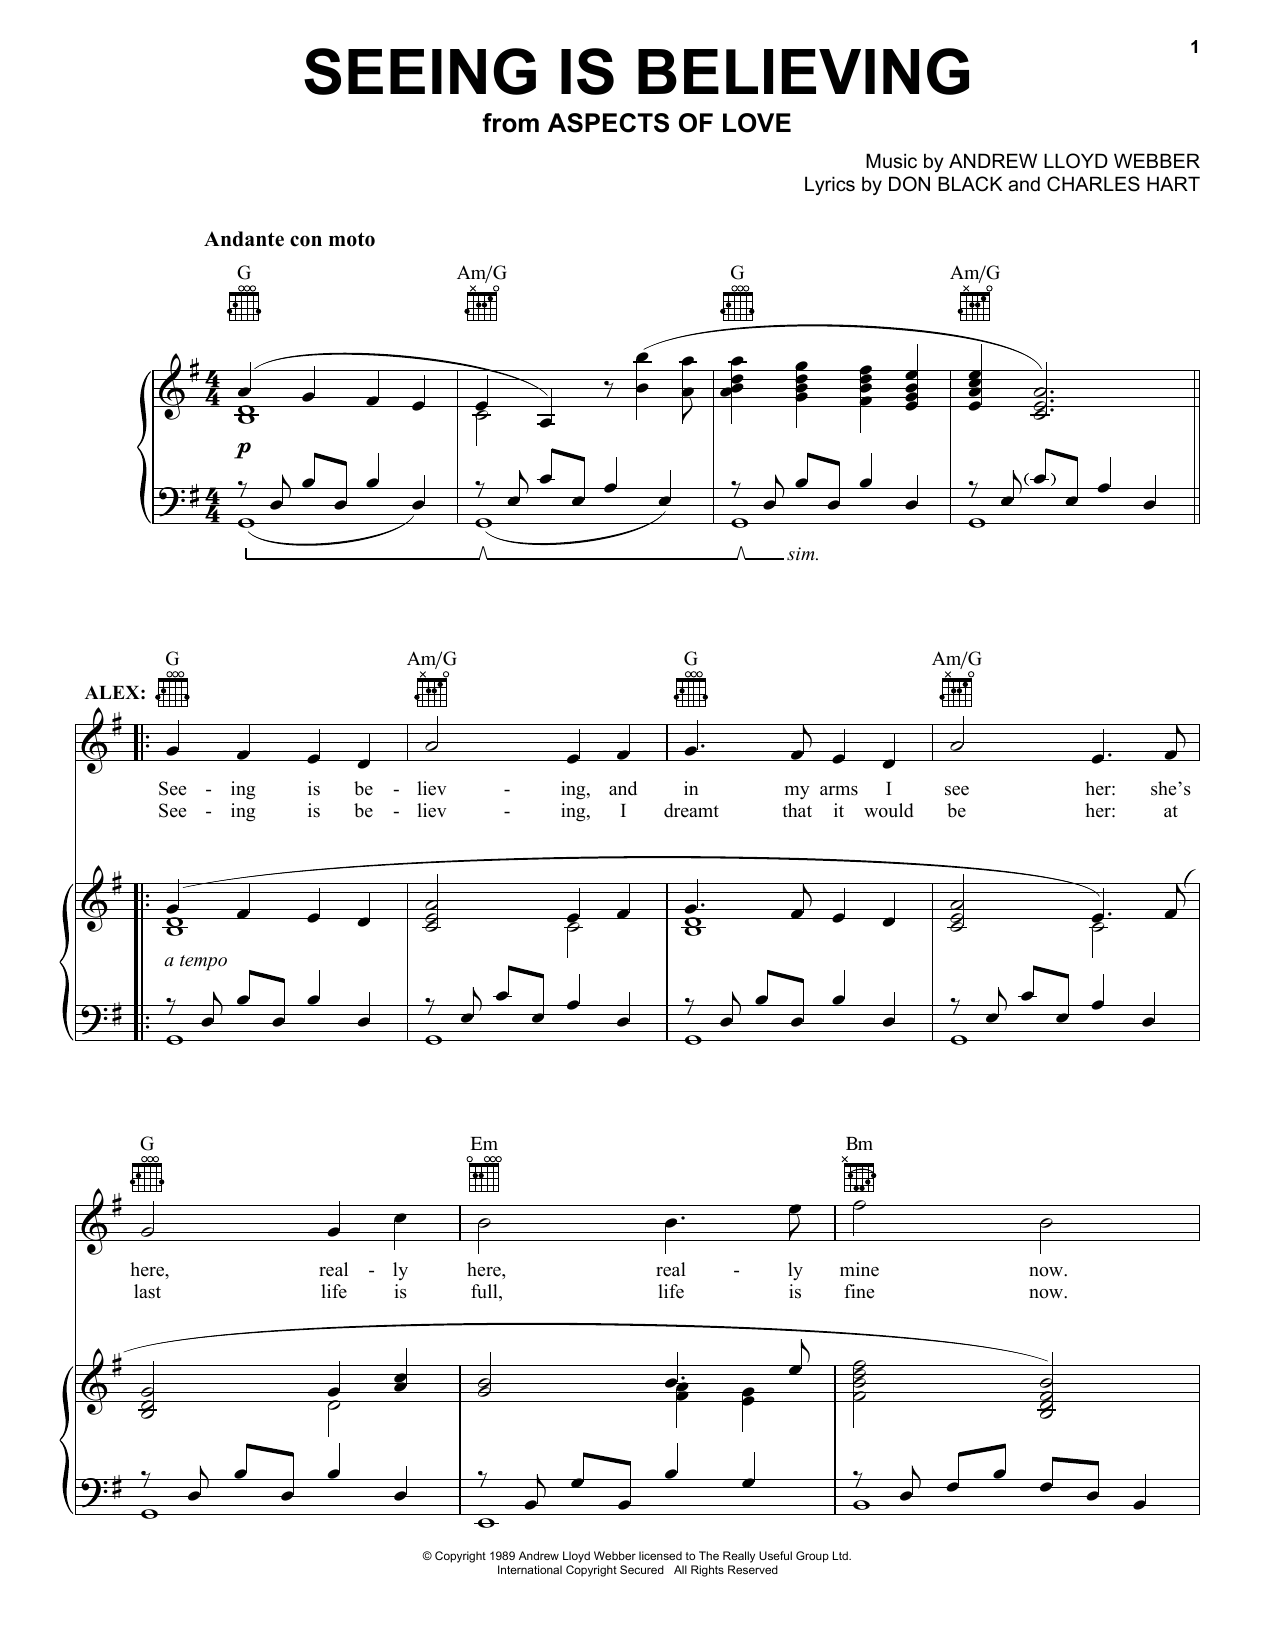 Andrew Lloyd Webber Seeing Is Believing (from Aspects of Love) sheet music notes and chords. Download Printable PDF.